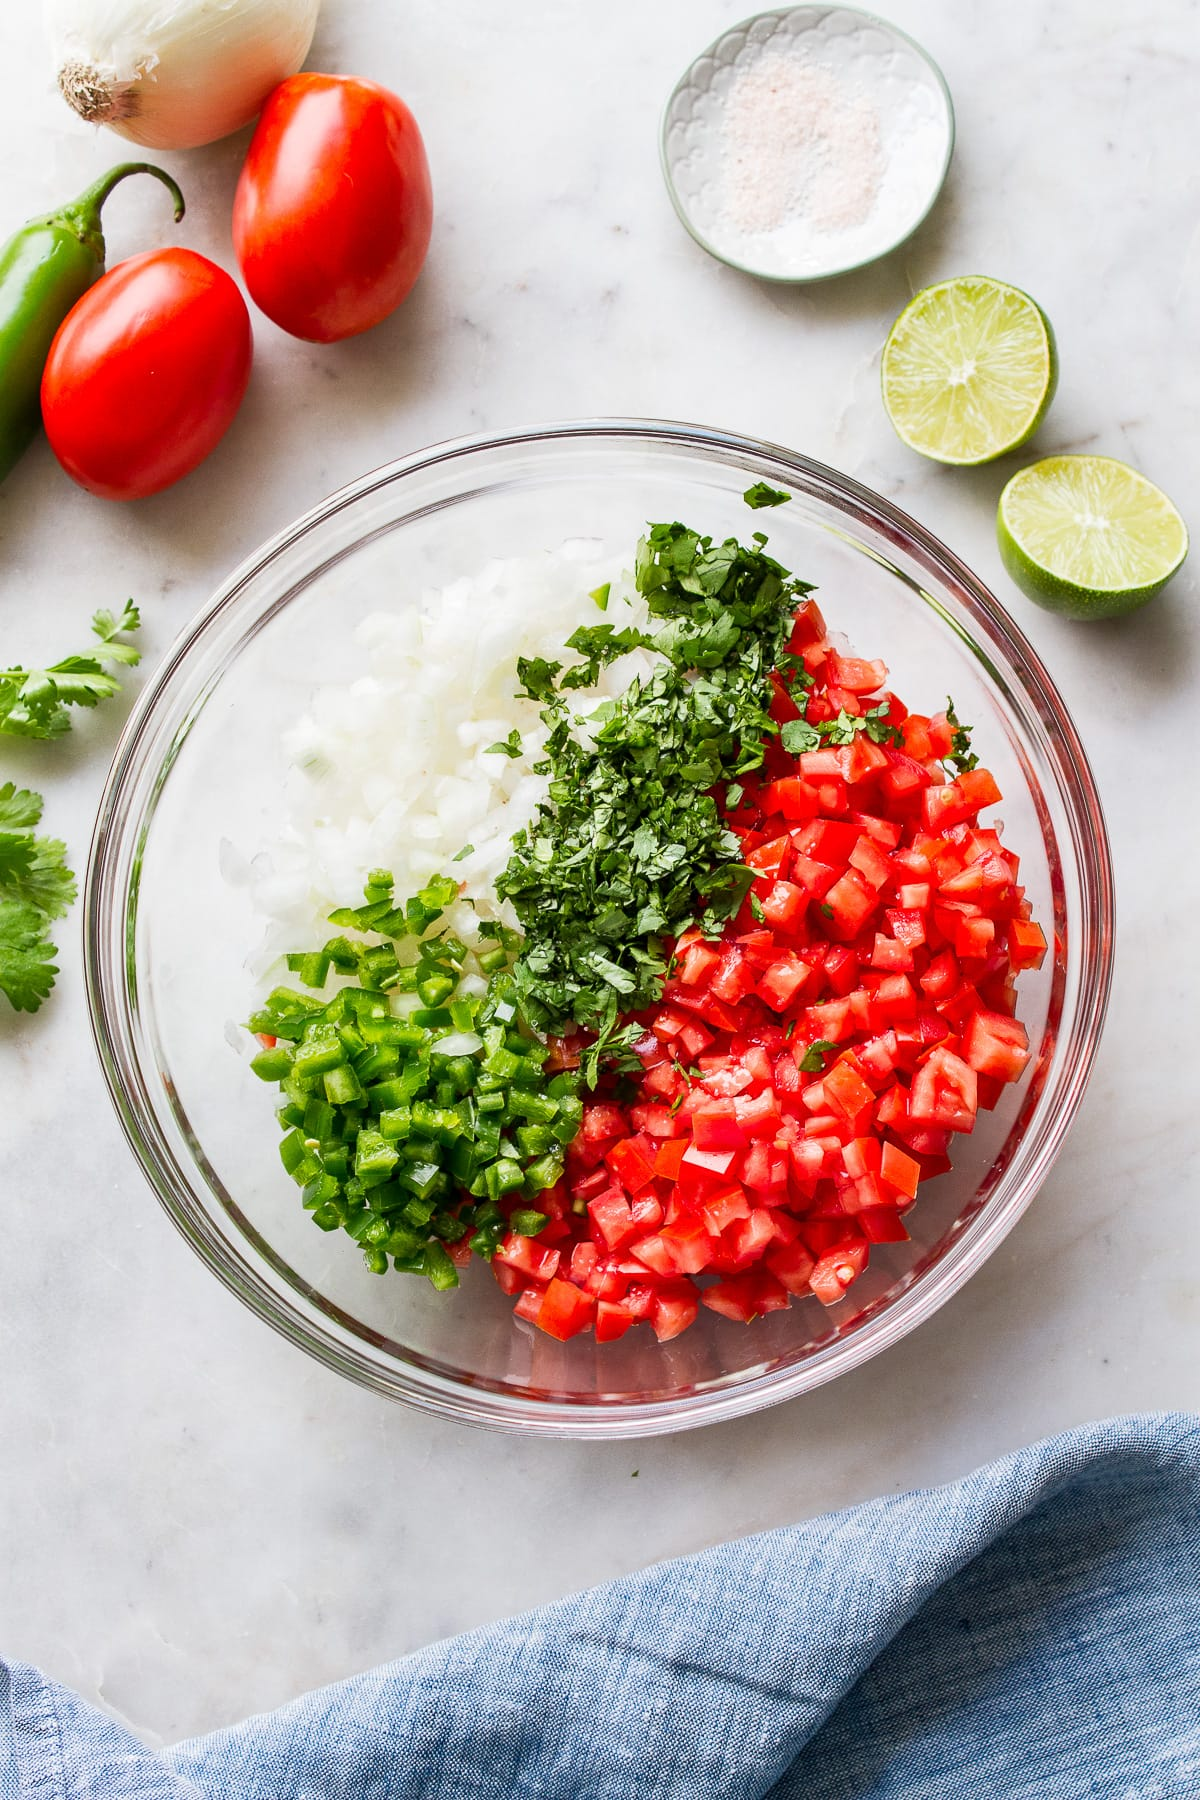 top down view of pico de gallo ingredients added to a glass mixing bowl before mixing to combine.